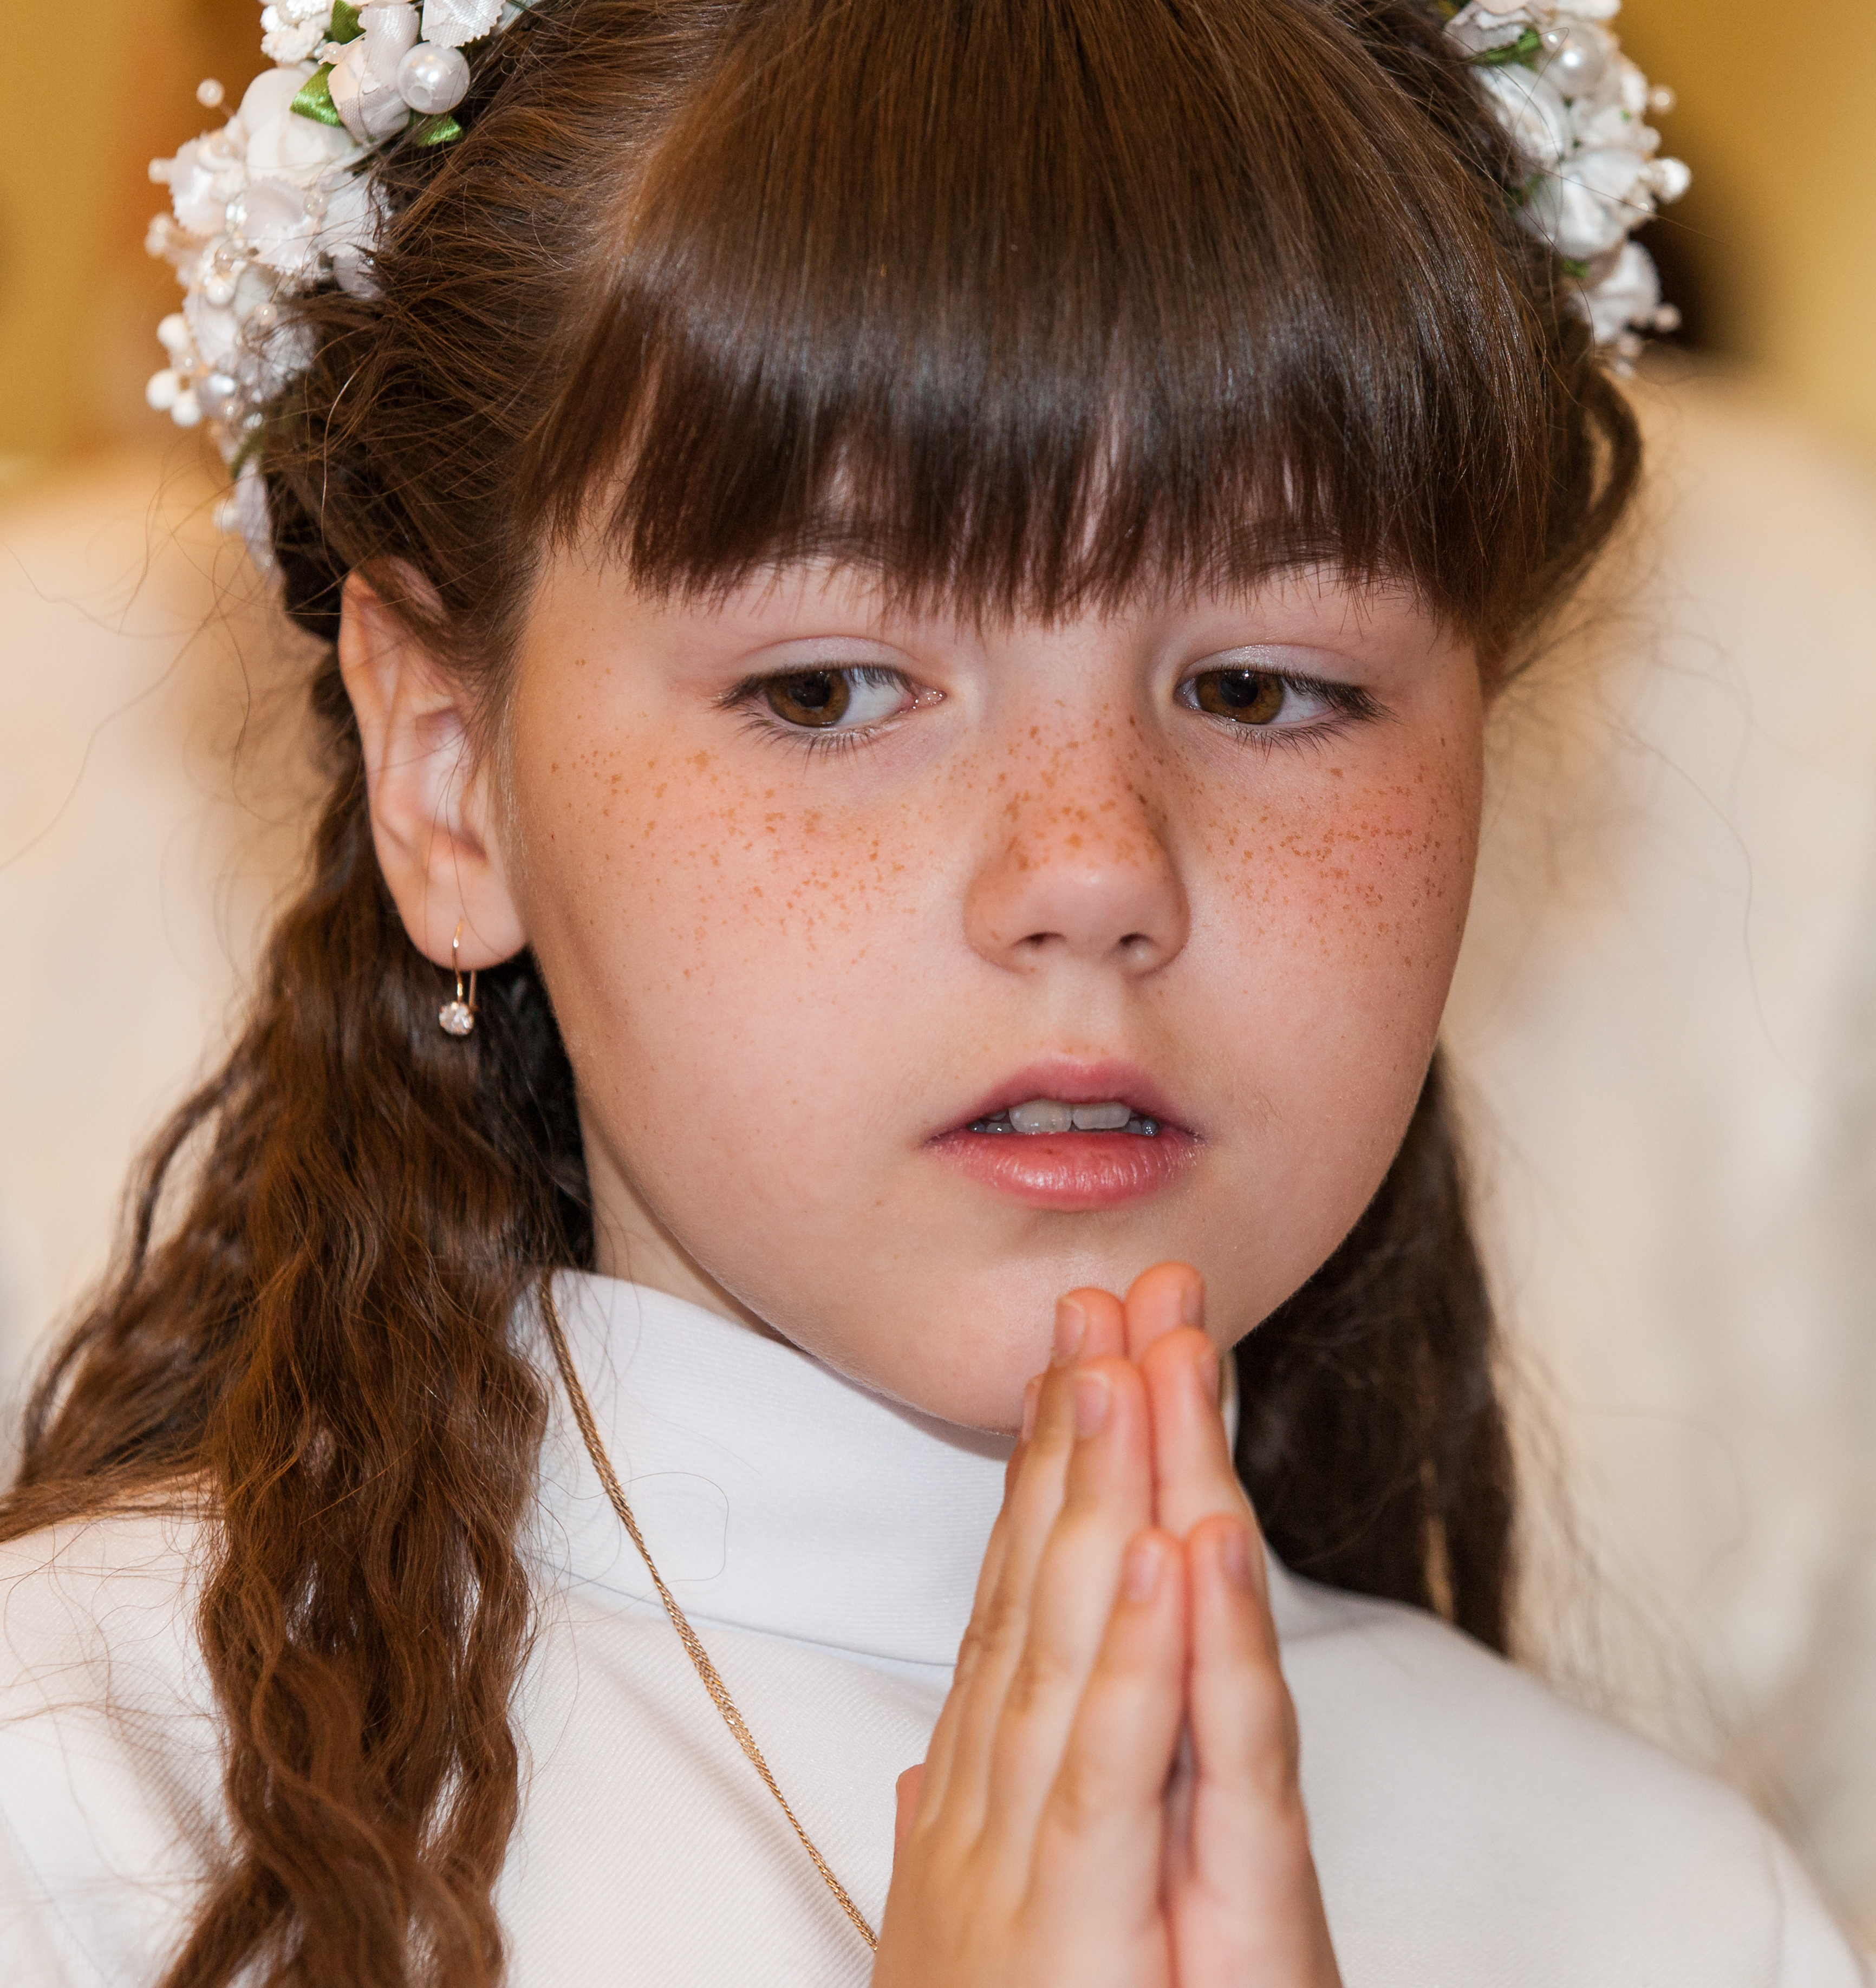 a Catholic child girl on her first Holy Communion Mass in June 2014, picture 2/4